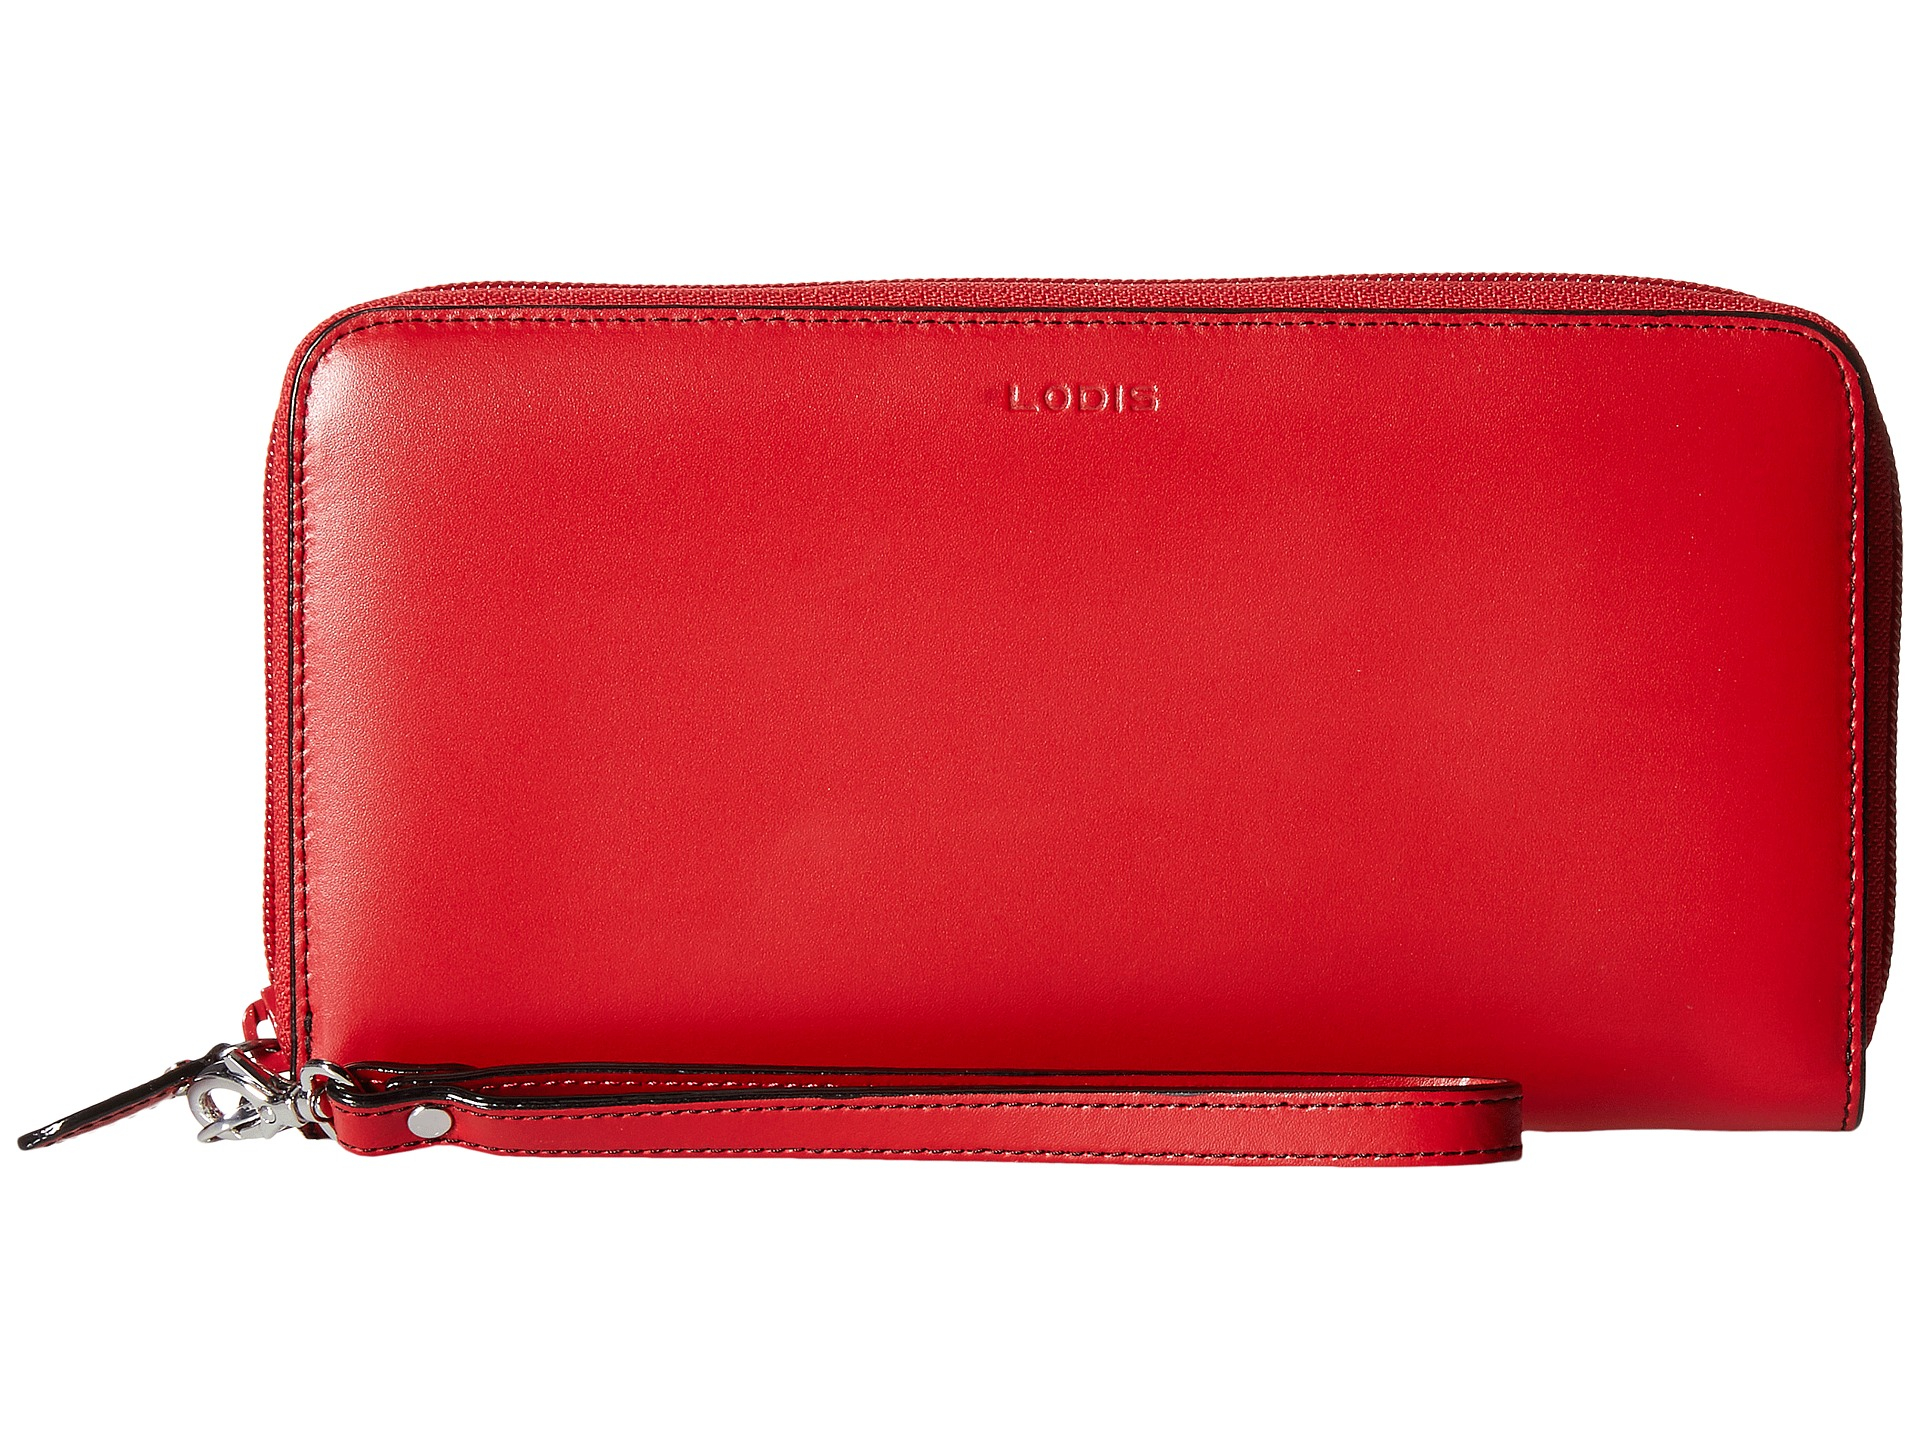 Lodis Wallets Sale: Save Up to 50% Off! Shop bestffileoe.cf's huge selection of Lodis Wallets - Over 80 styles available. FREE Shipping & Exchanges, and a % price guarantee!